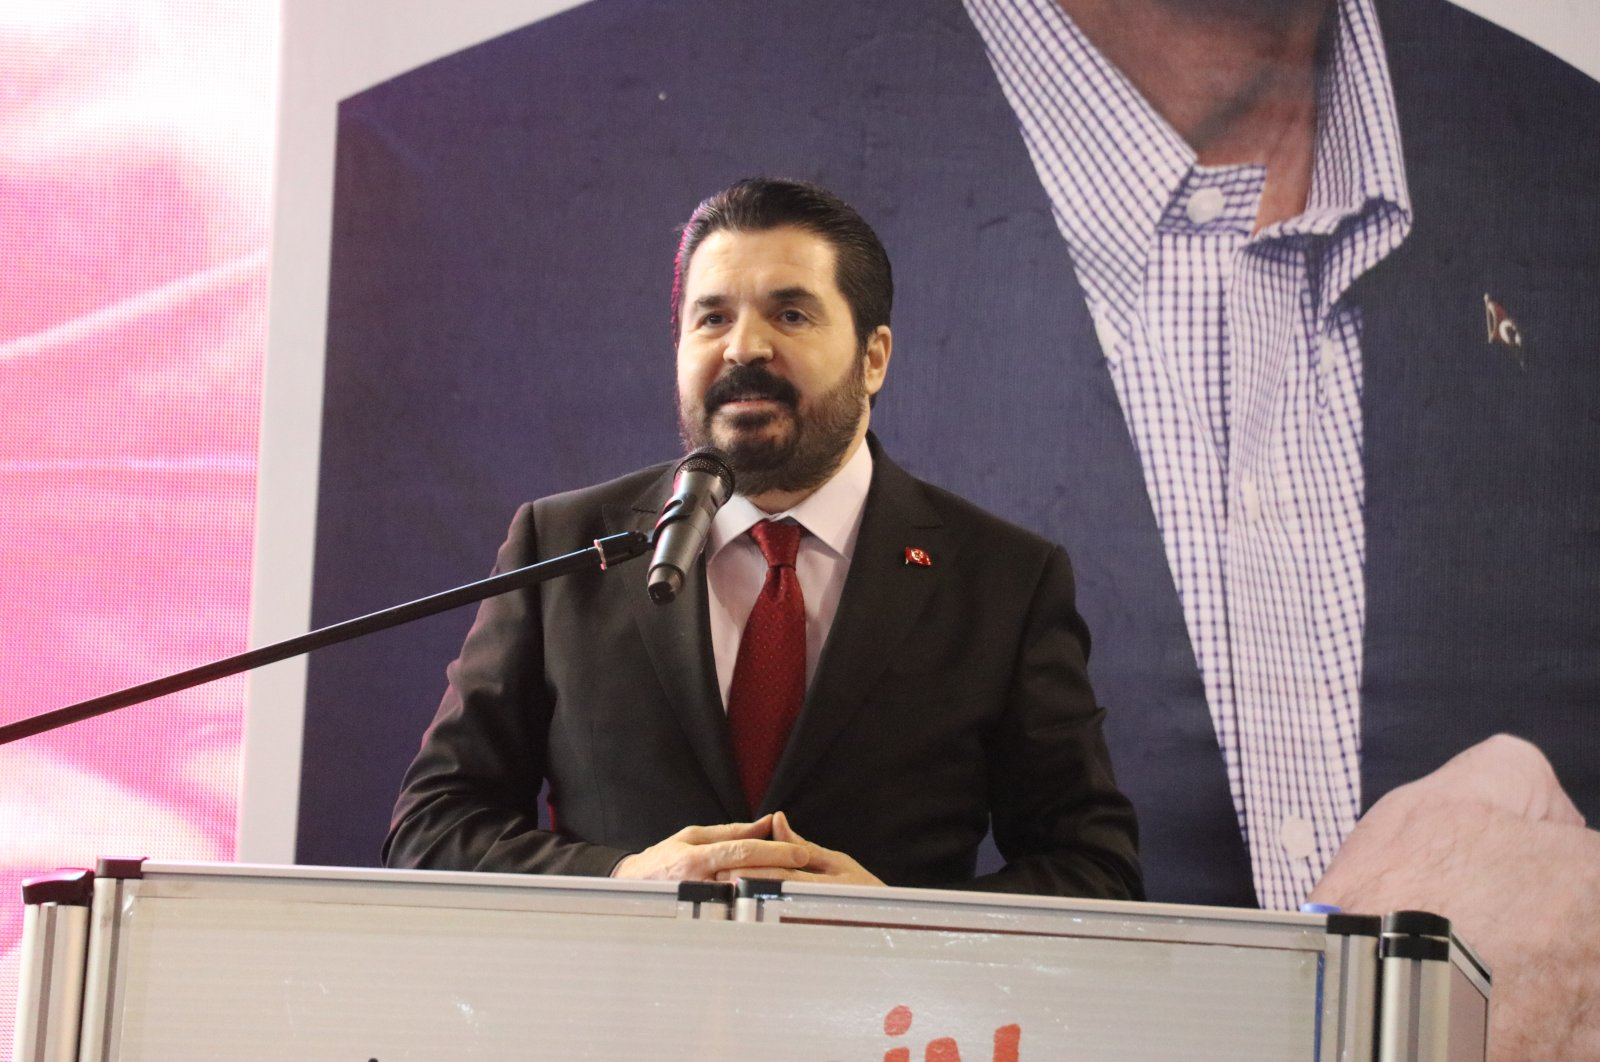 Ağrı Mayor Savcı Sayan speaks at the Justice and Development Party's (AK Party) Youth Congress in Ağrı province, eastern Turkey, Feb. 8, 2021 (AA Photo)